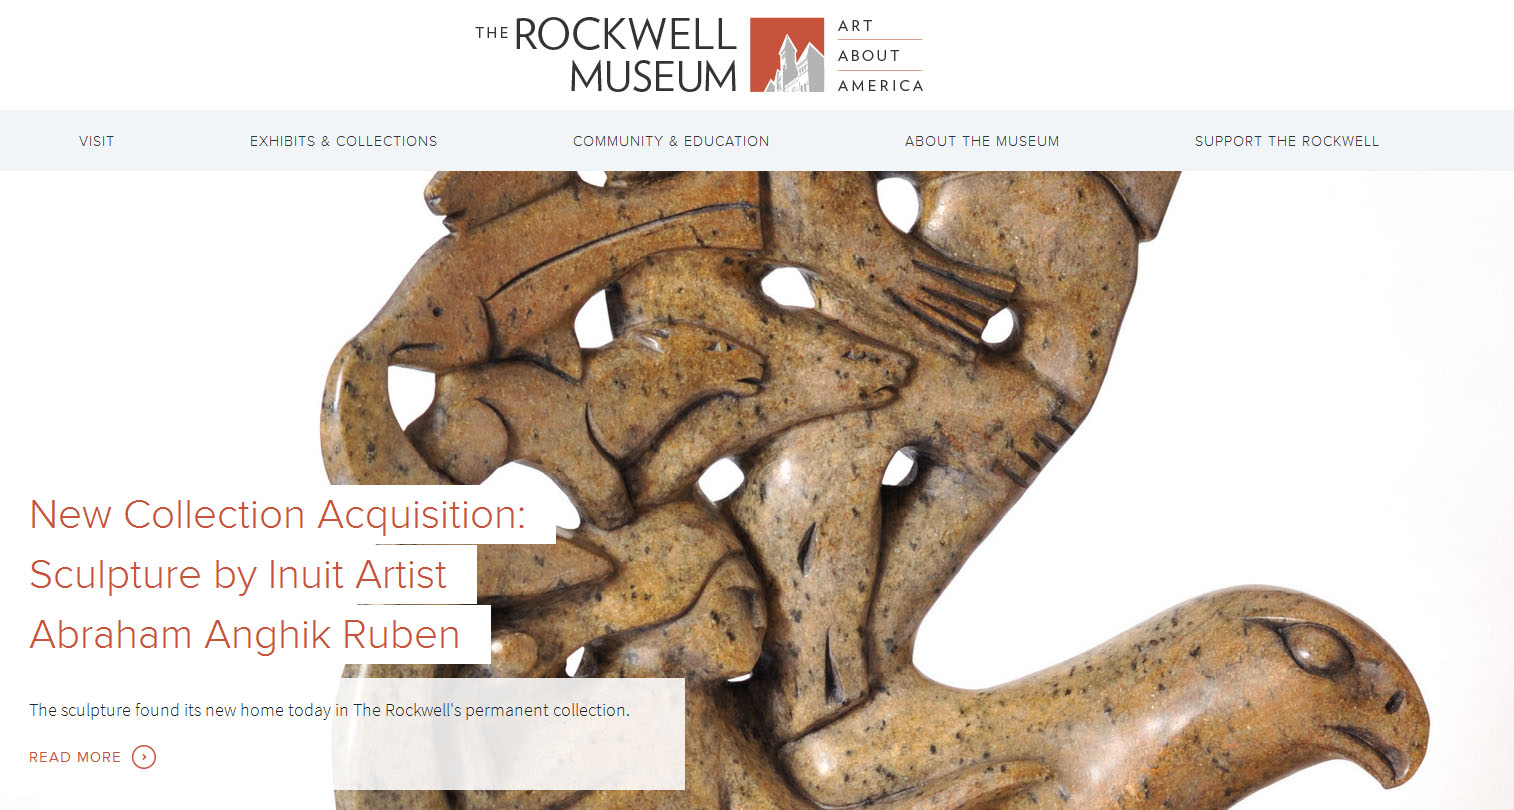 Rockwell-Museum-Acquisition.jpg